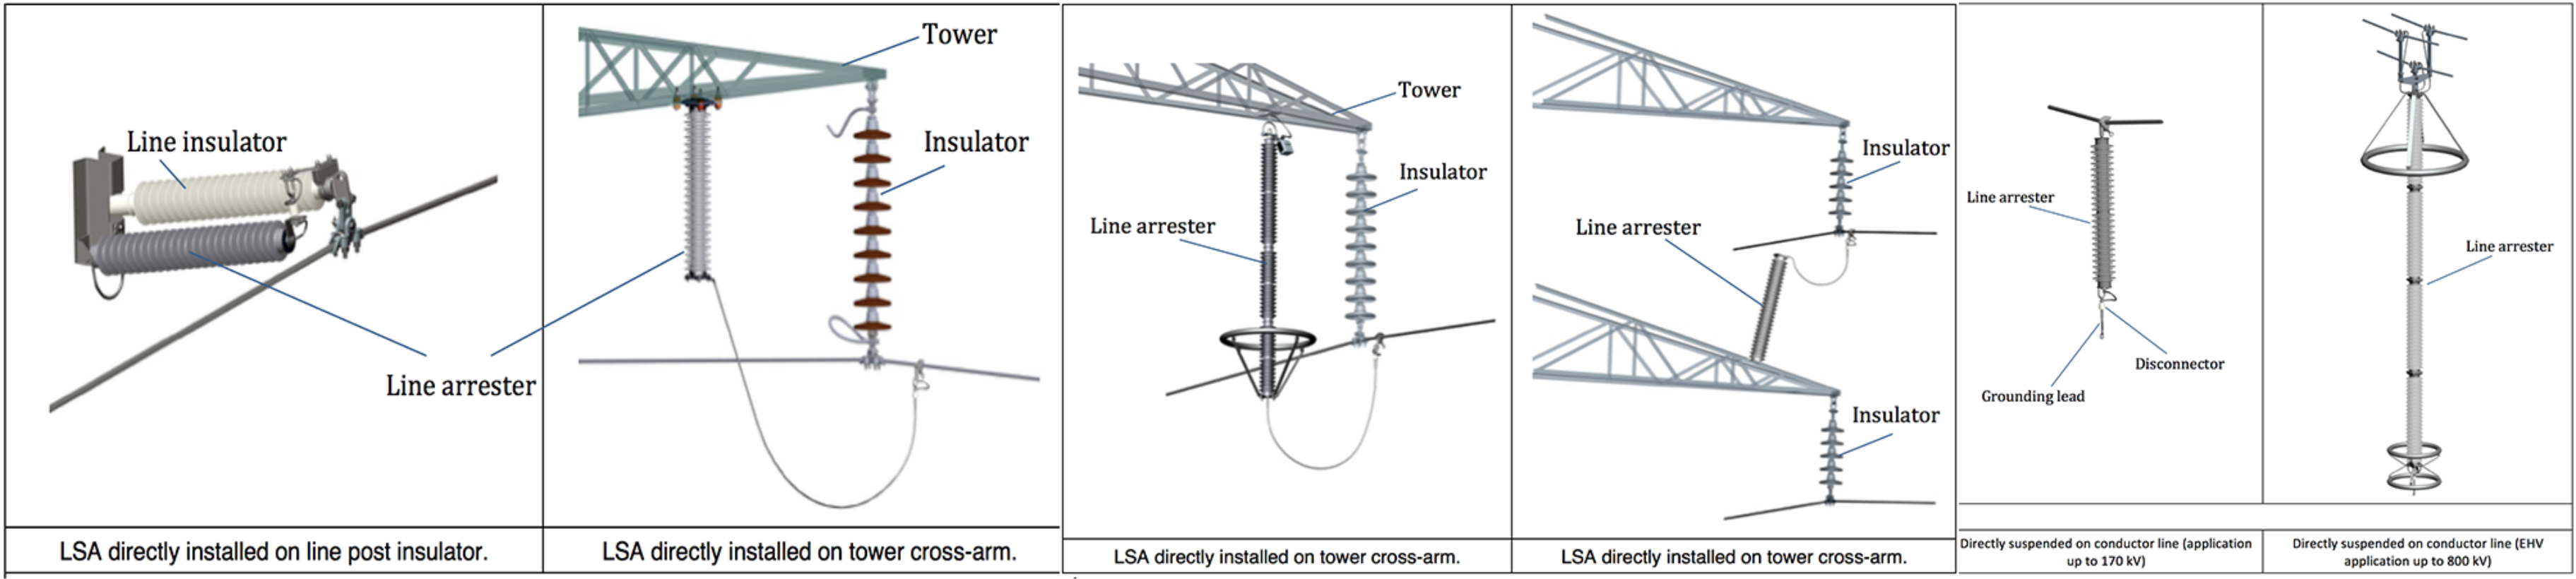 Examples of Line Surge Arresters (LSAs) Non-Gapped Line Arresters (NGLAs) line surge arresters Advantages of Line Surge Arresters Screen Shot 2016 06 30 at 14